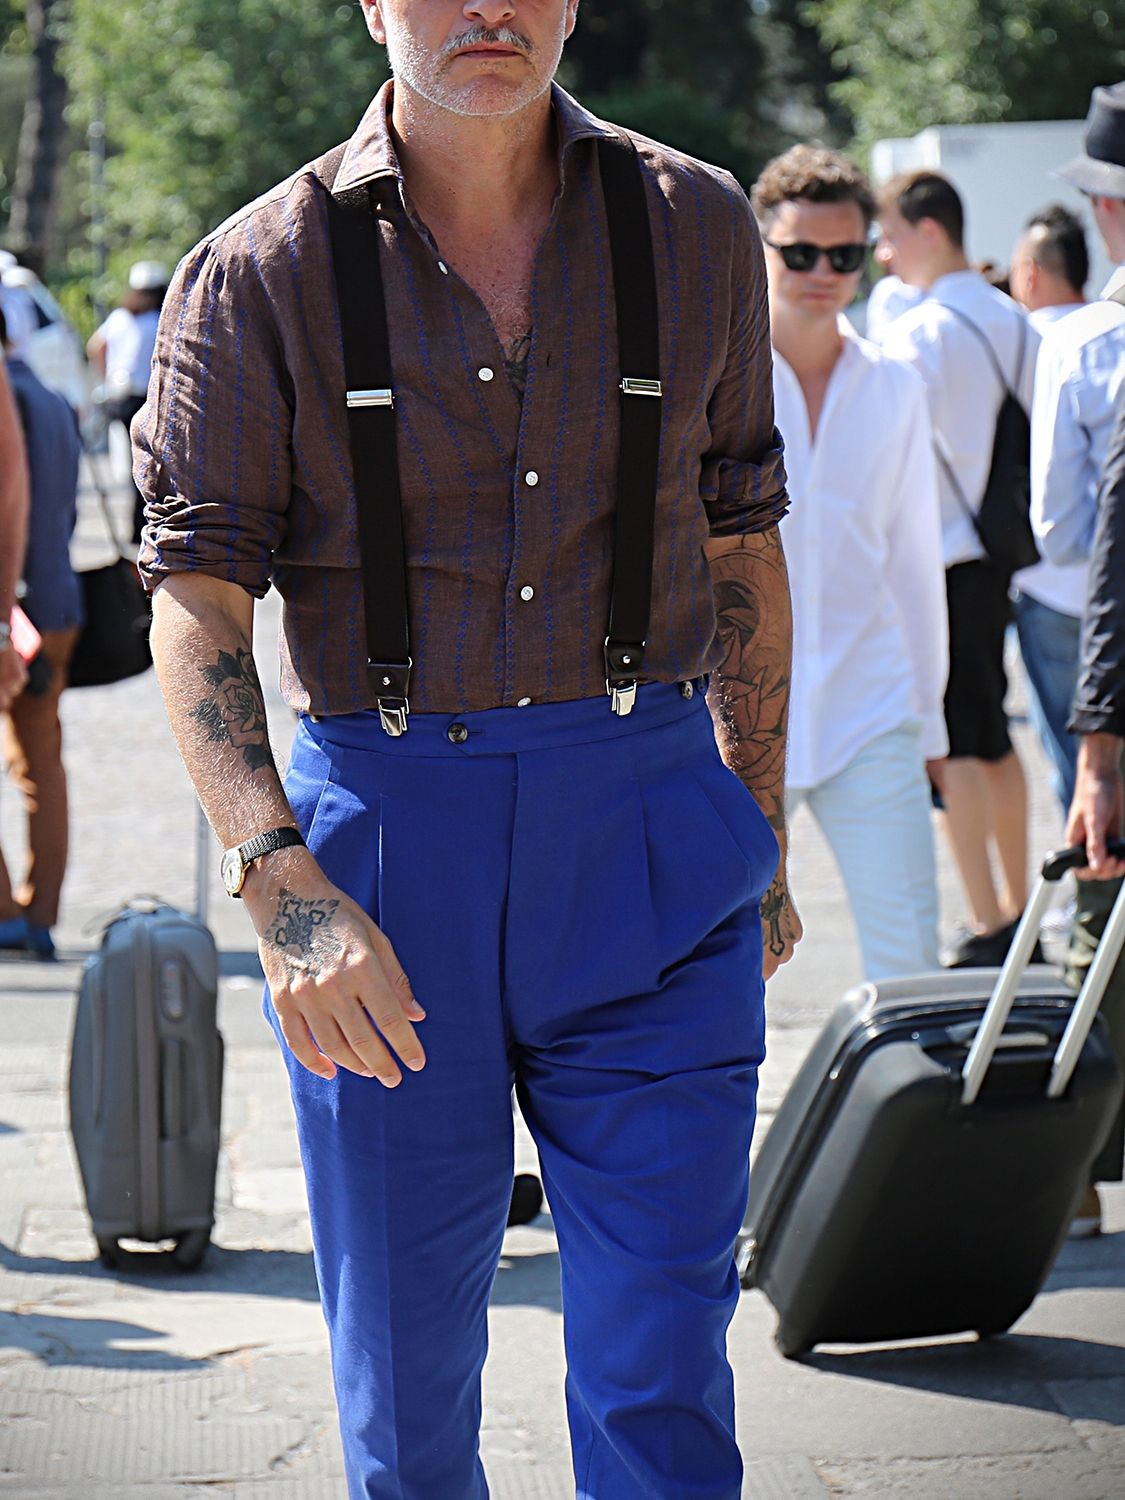 Men's outfit idea for 2021 with blue plain formal trousers, navy braces, brown brogues. Suitable for spring, summer and autumn.